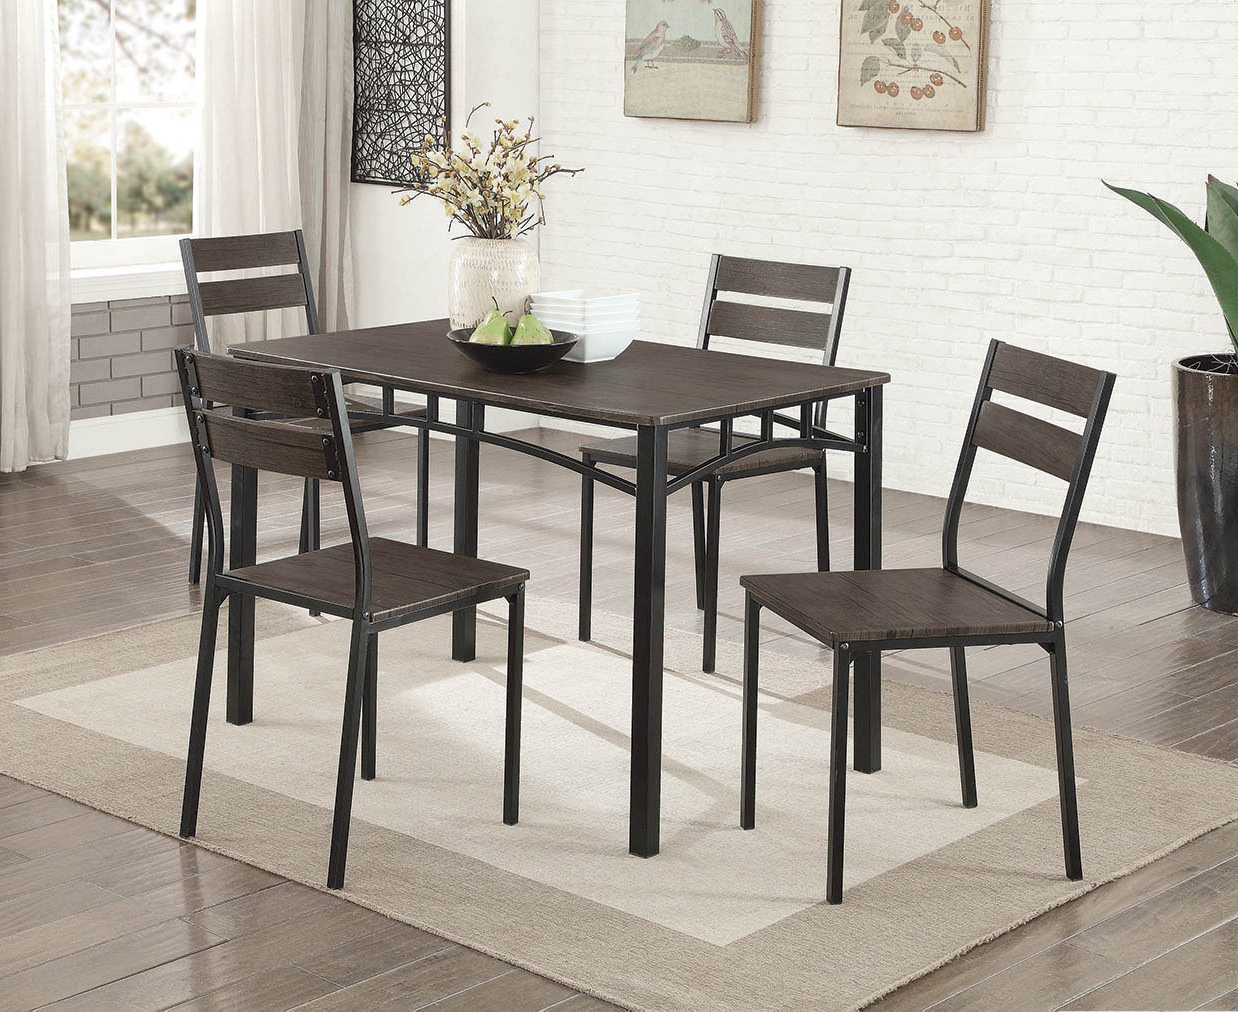 Autberry 5 Piece Dining Sets With Regard To Preferred Autberry 5 Piece Dining Set (Gallery 1 of 20)